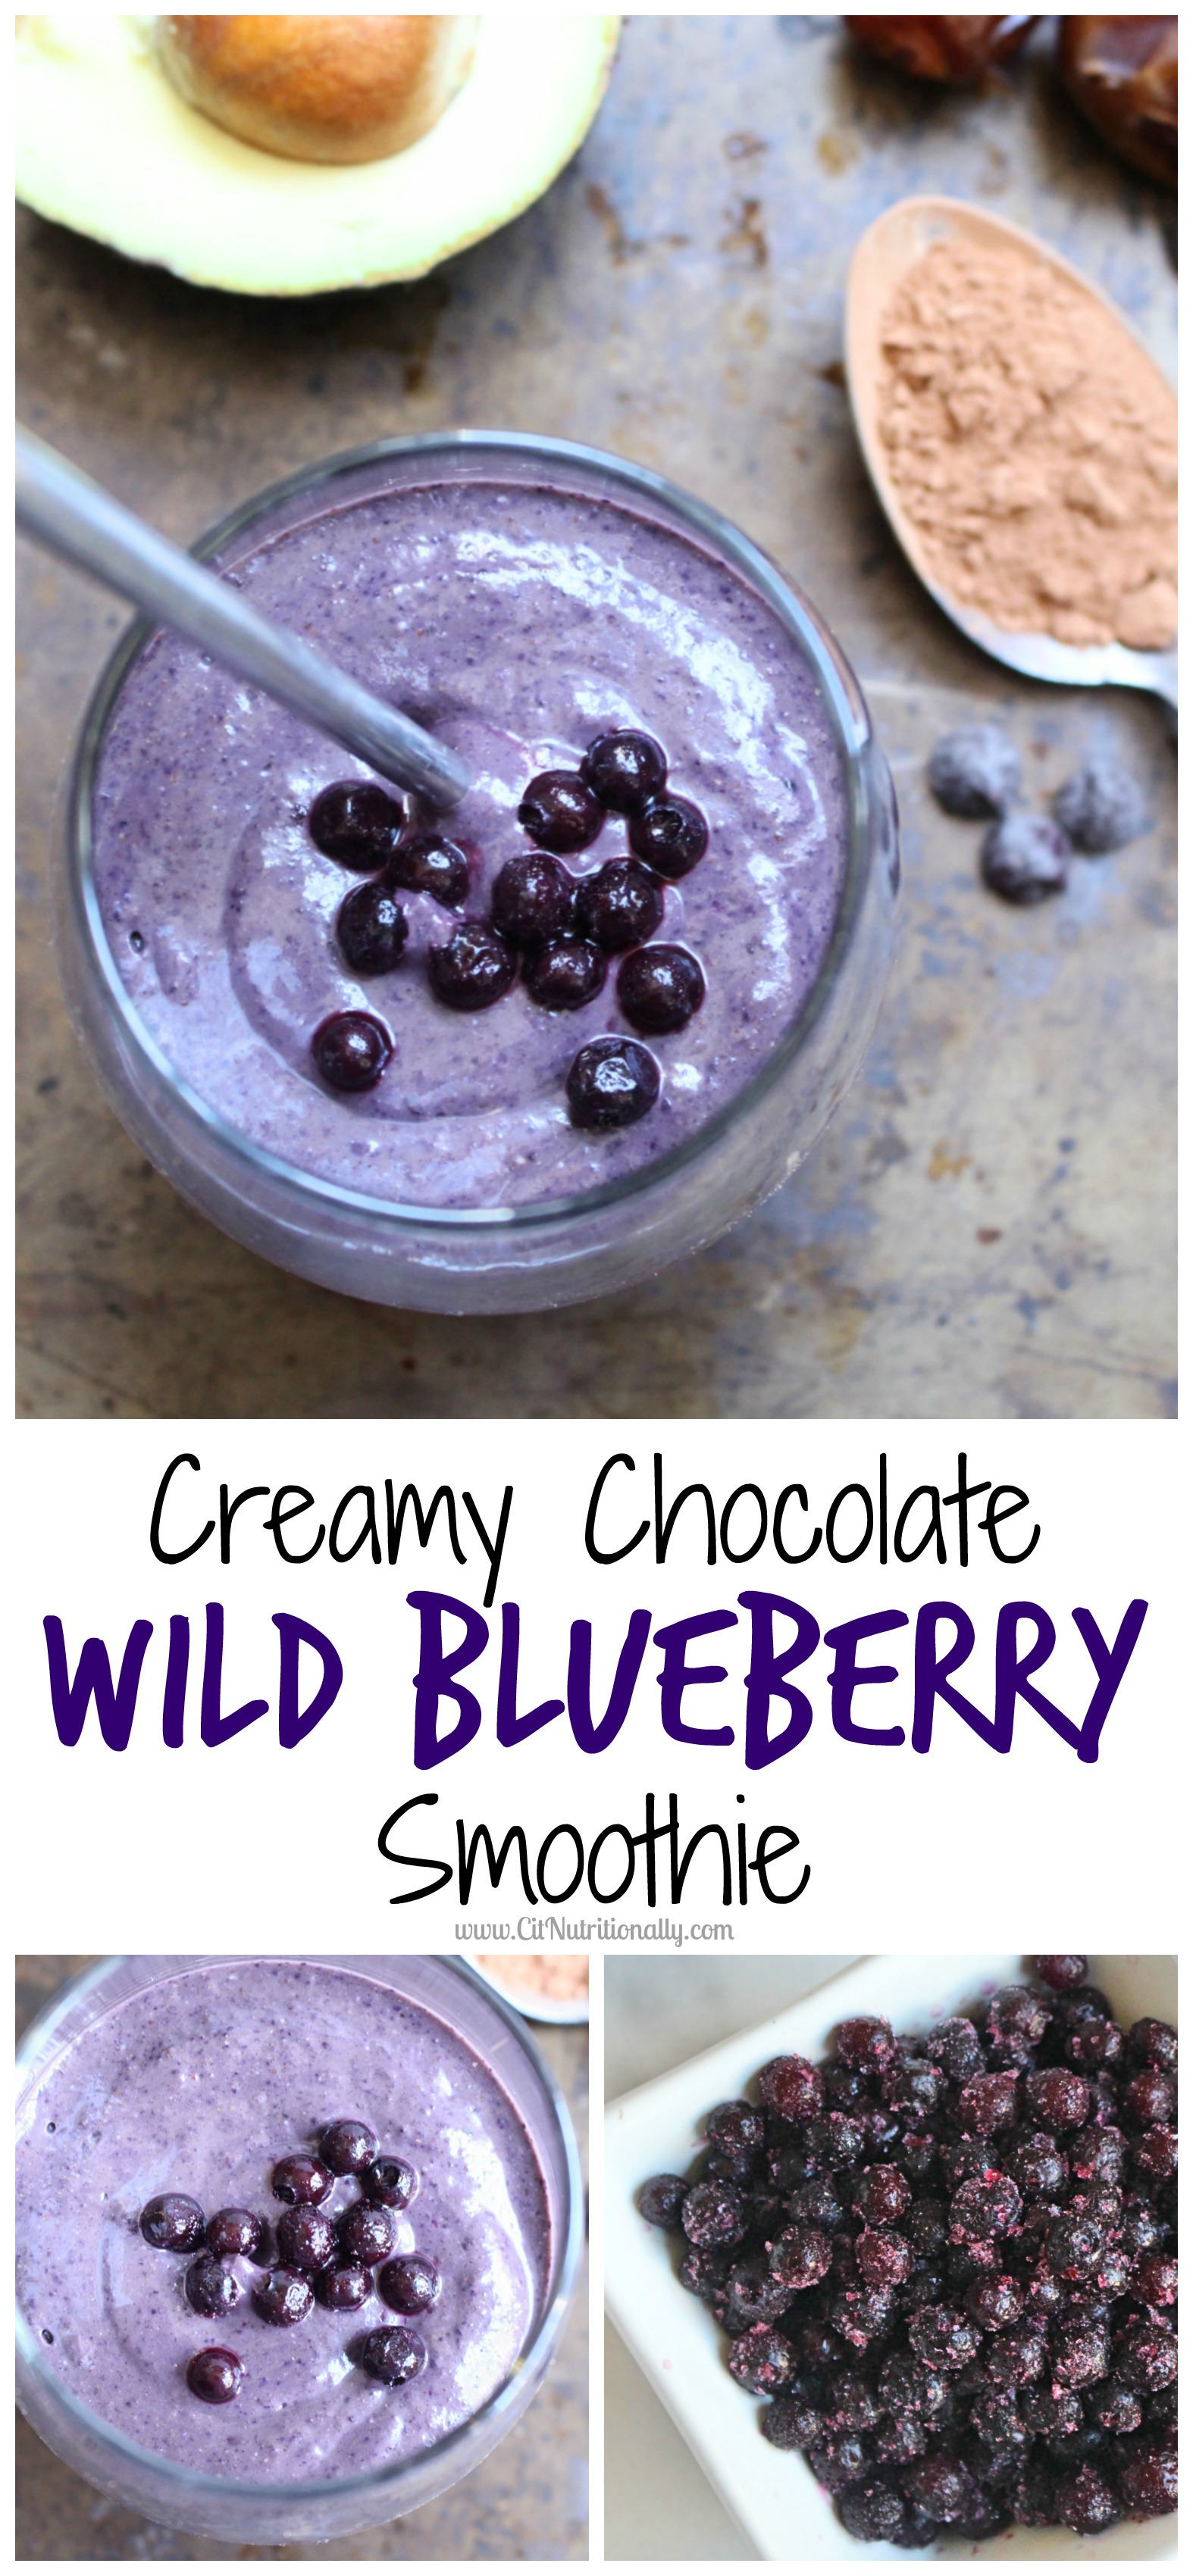 Creamy Chocolate Wild Blueberry Smoothie | C it Nutritionally #ad